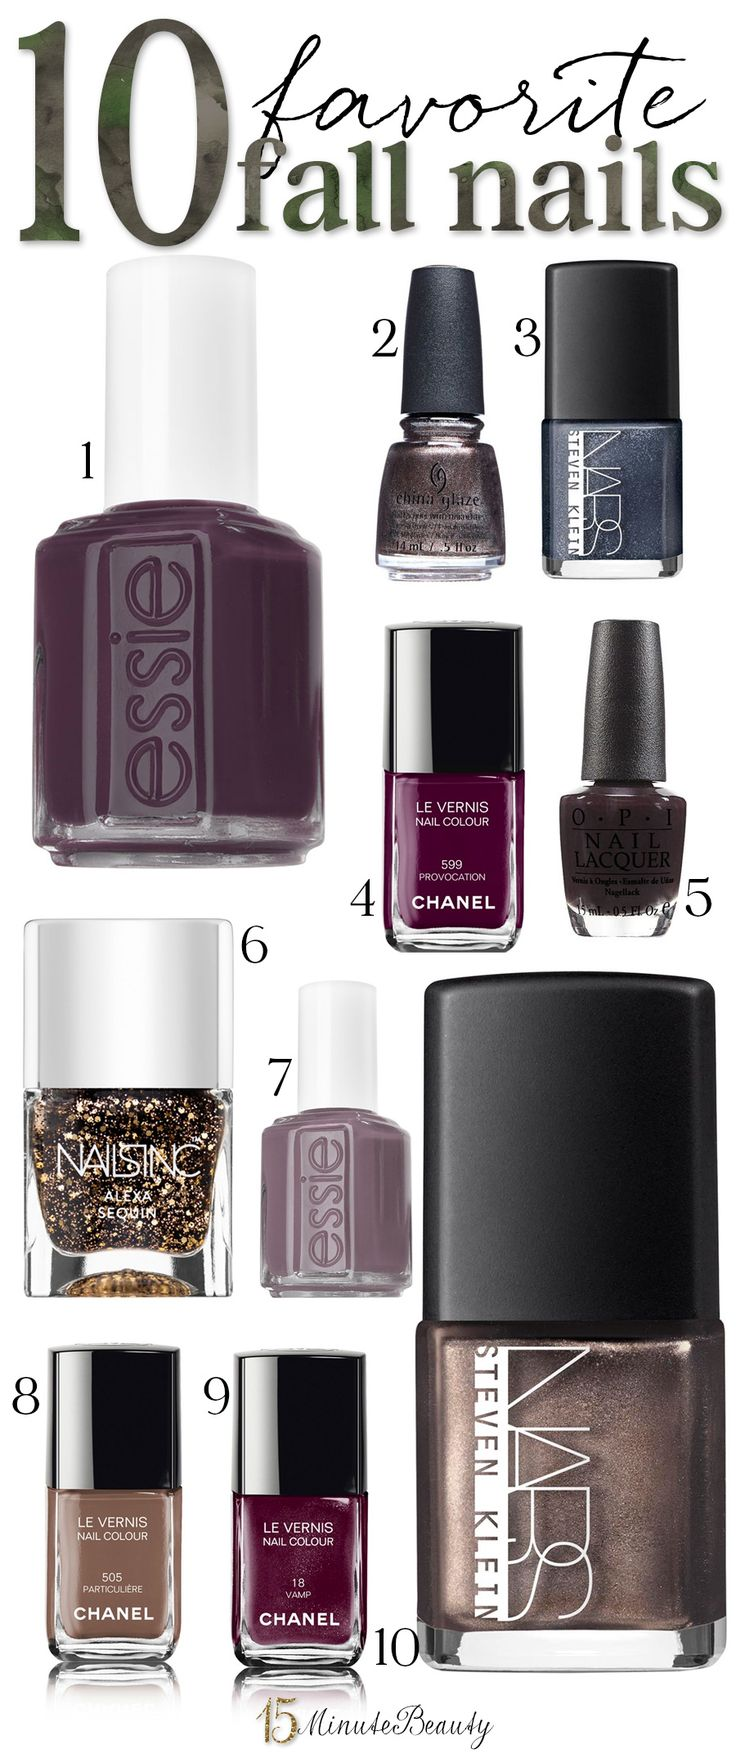 My 10 Favorite Fall Nail Polish Shades via @15 Minute Beauty